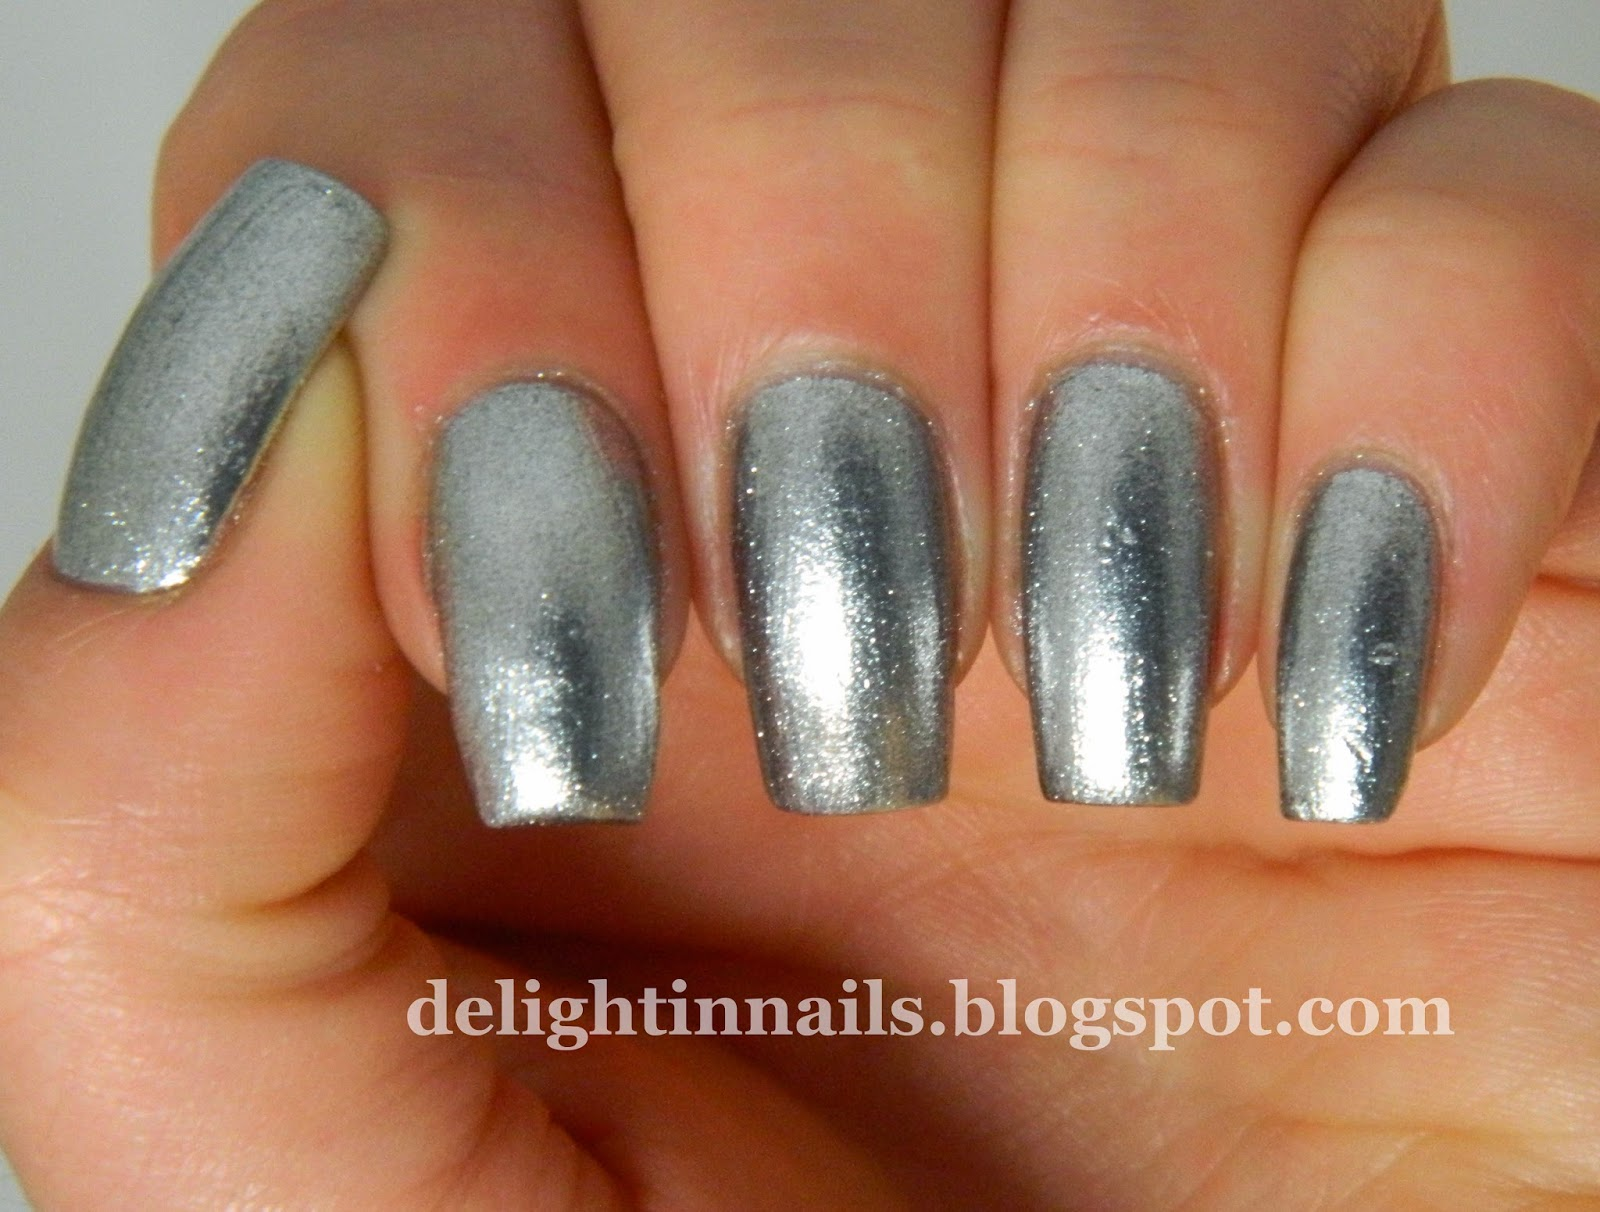 Delight In Nails: October 2014